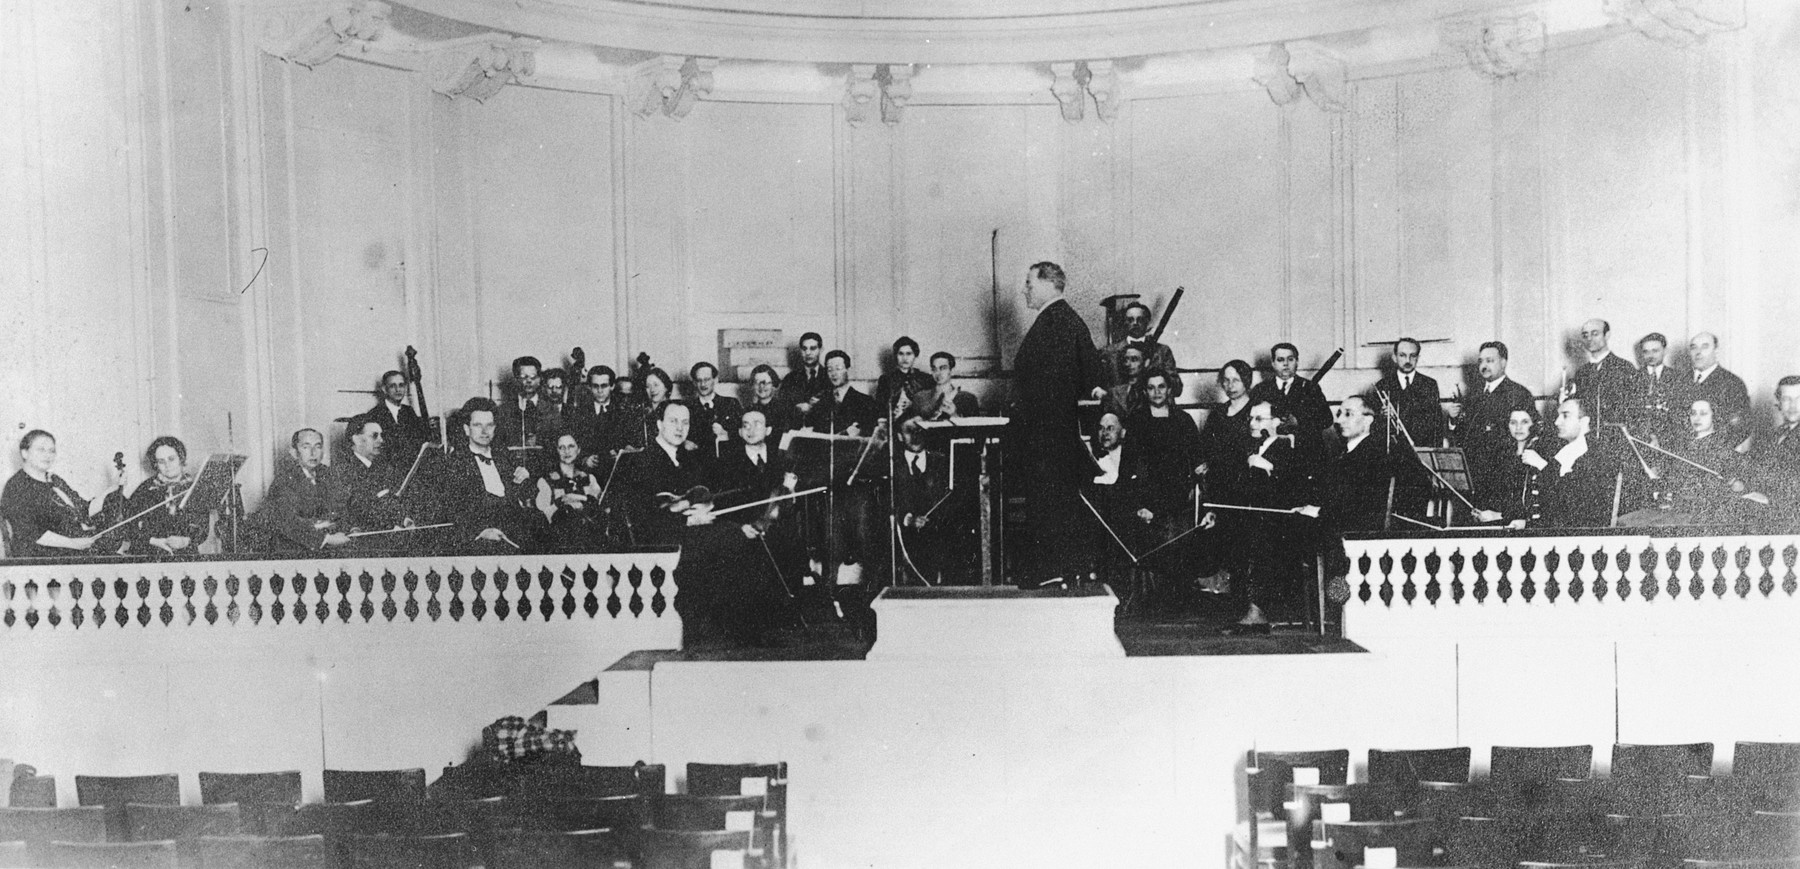 Conductor Julius Prüwer stands in from of theJewish Kulturbund orchestra on stage in Frankfurt.